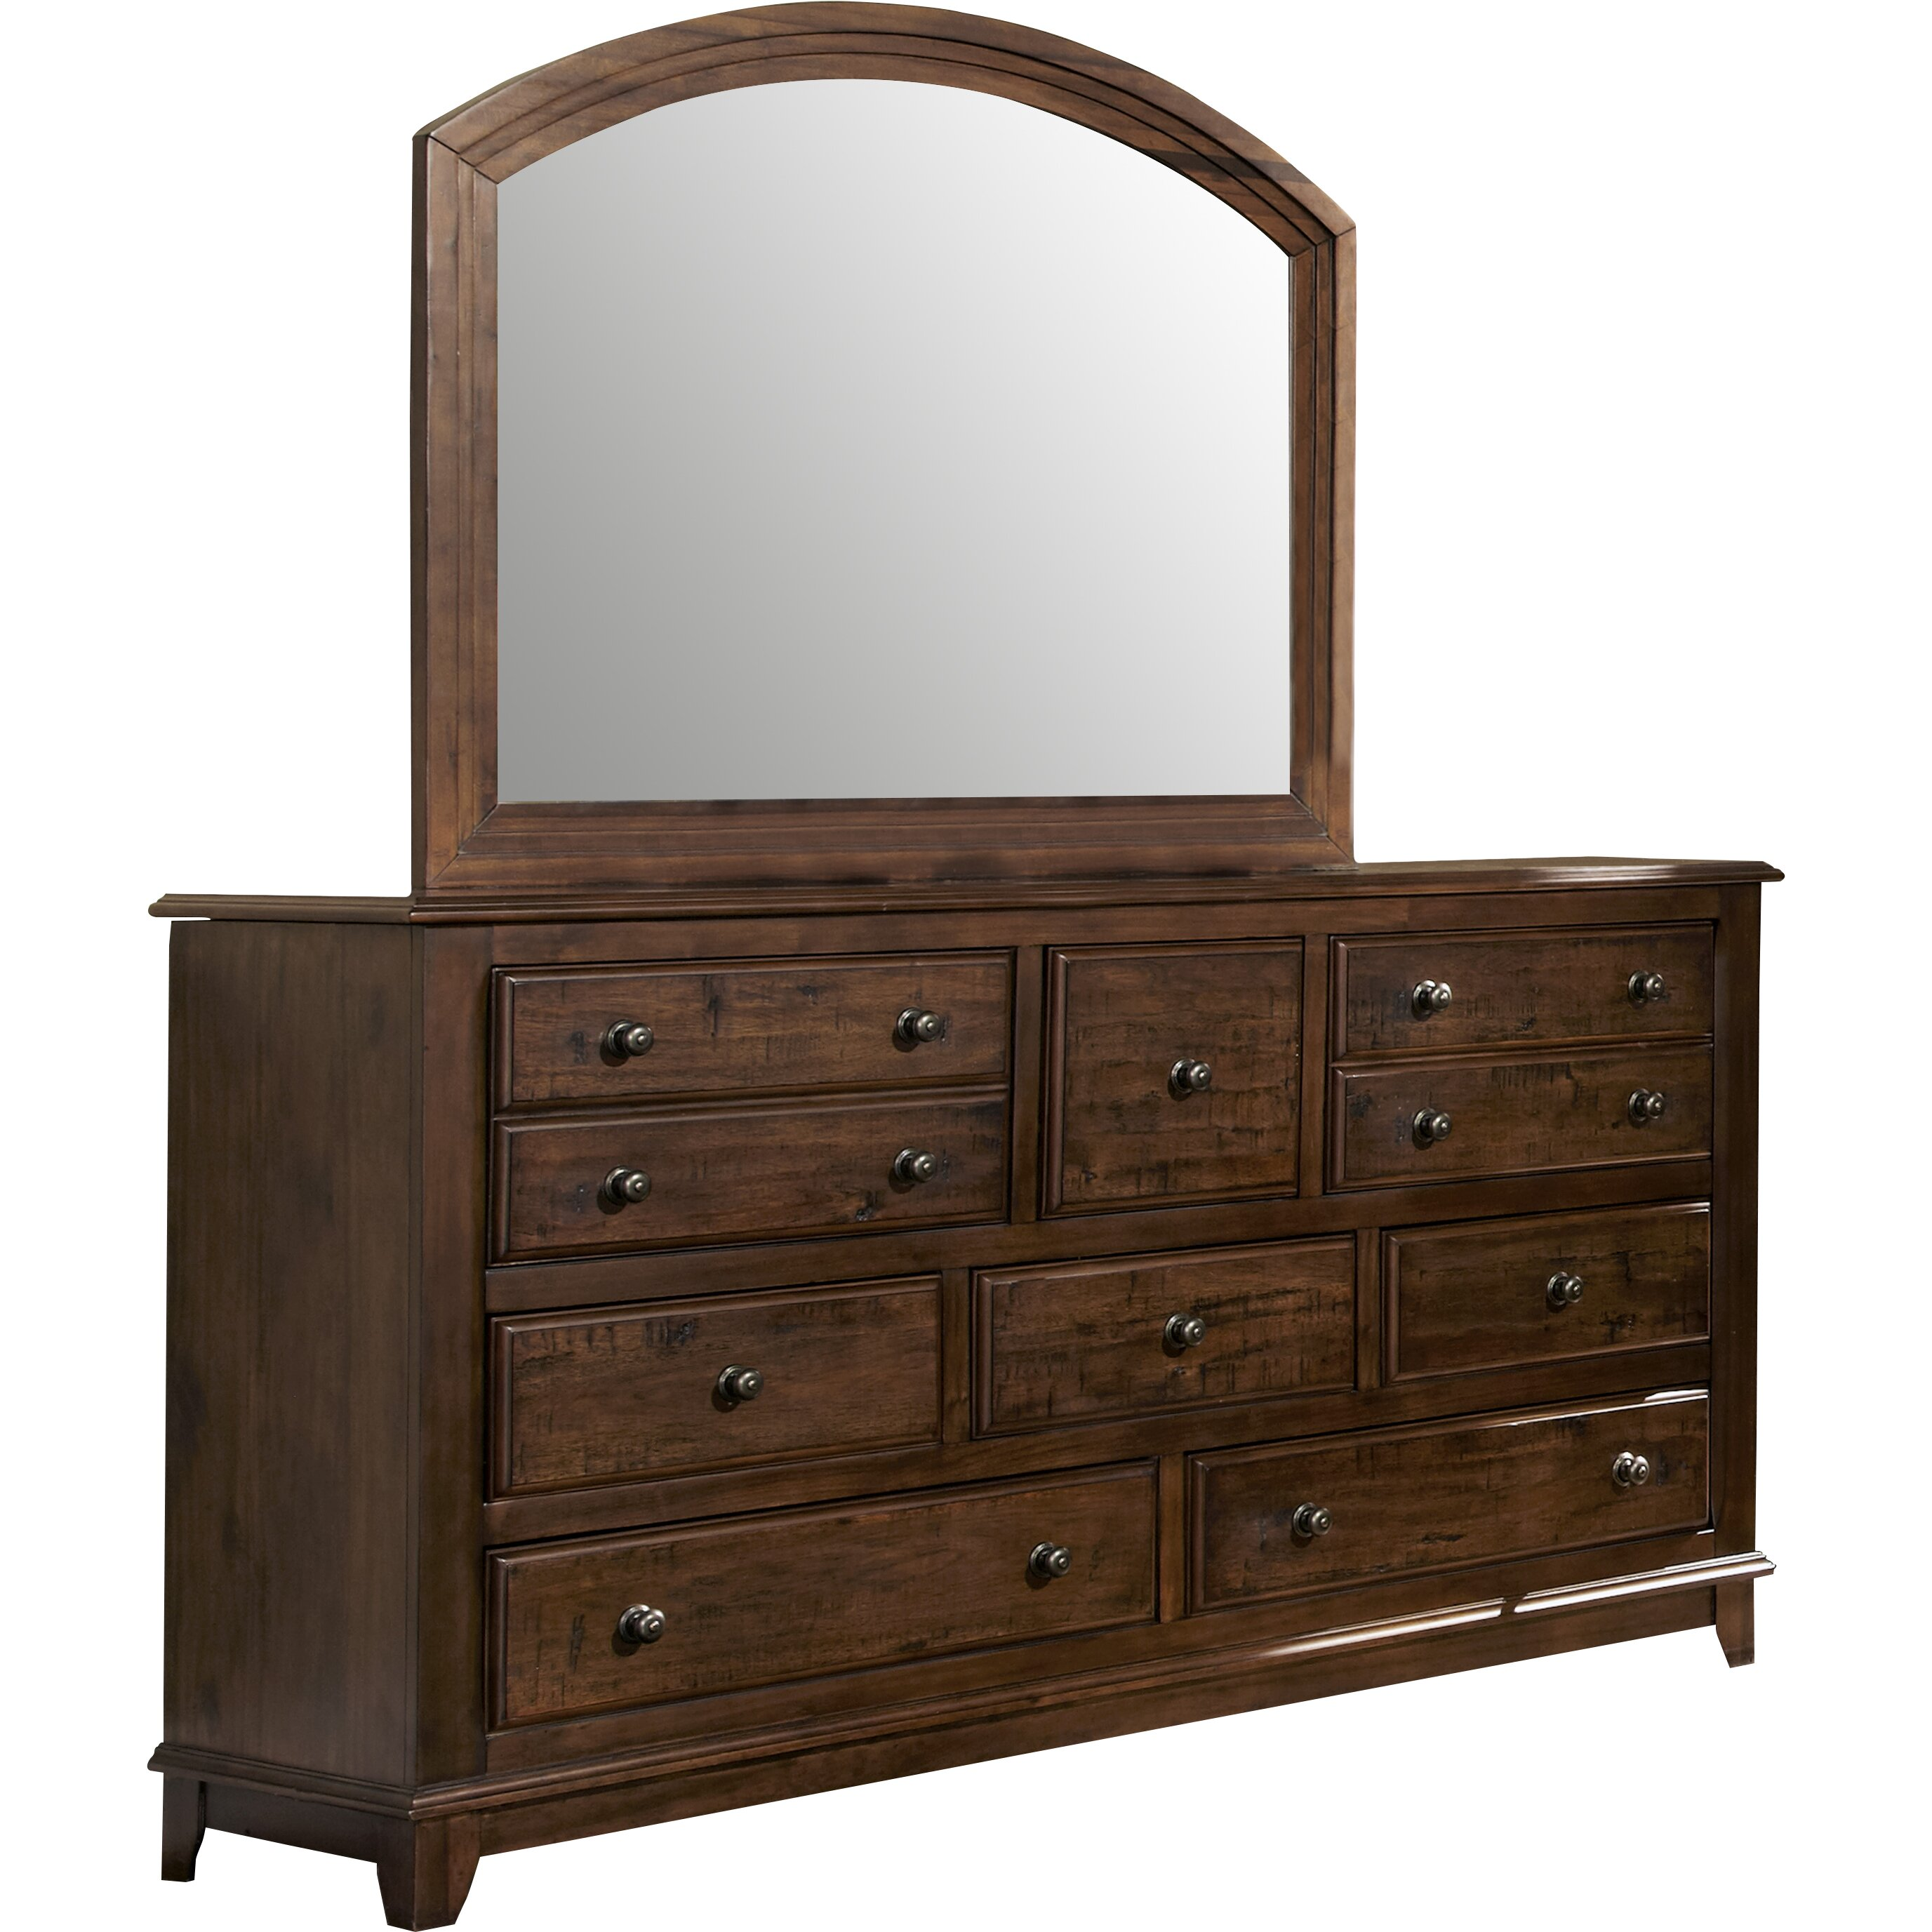 Darby Home Co Newbury 8 Drawer Dresser With Mirror Reviews Wayfair